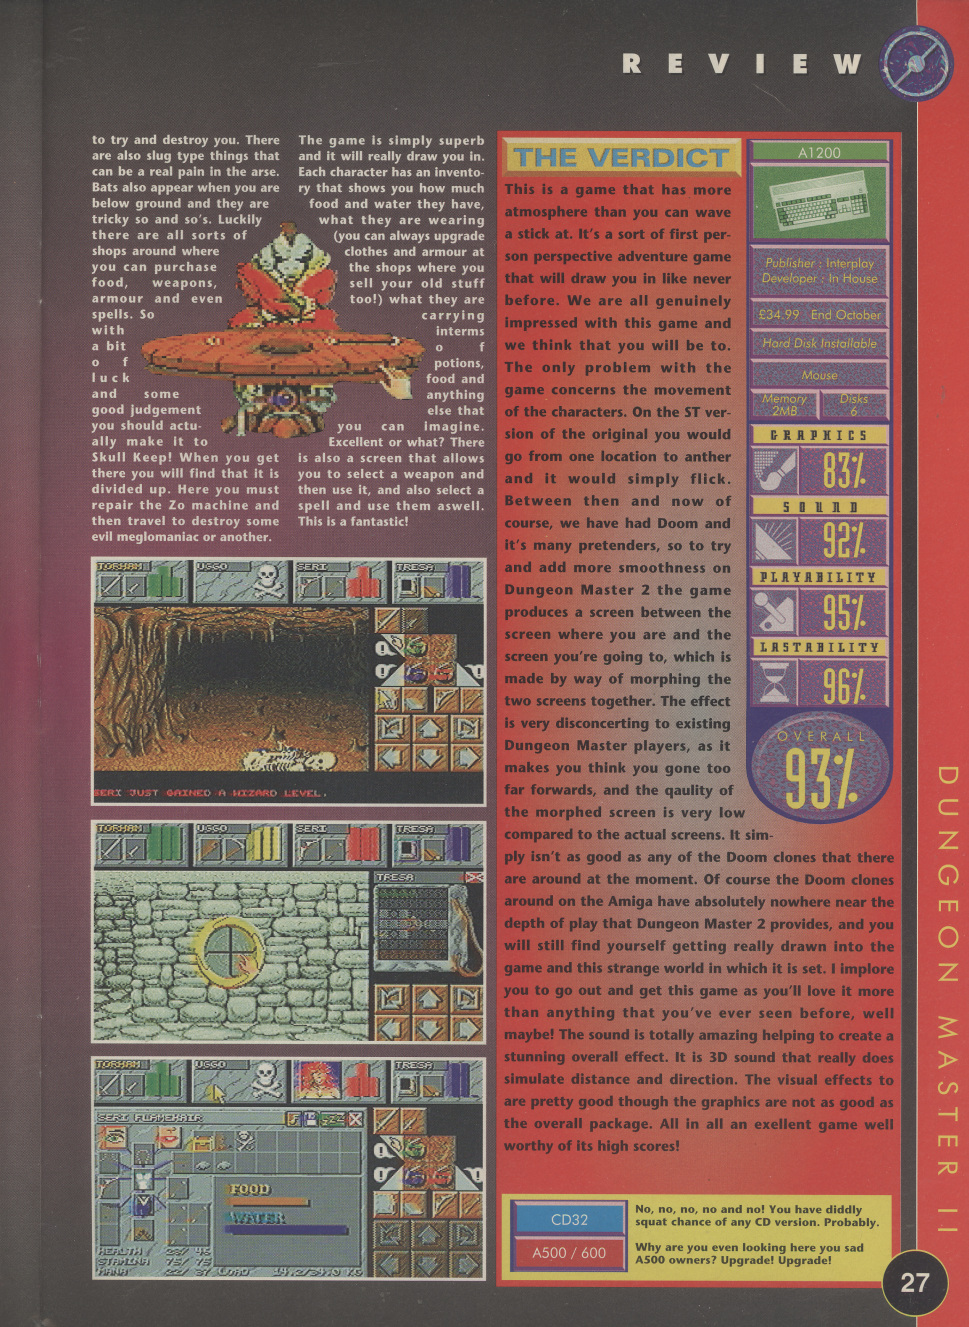 Dungeon Master II for Amiga Review published in British magazine 'The One Amiga', Issue #85 November 1995, Page 27